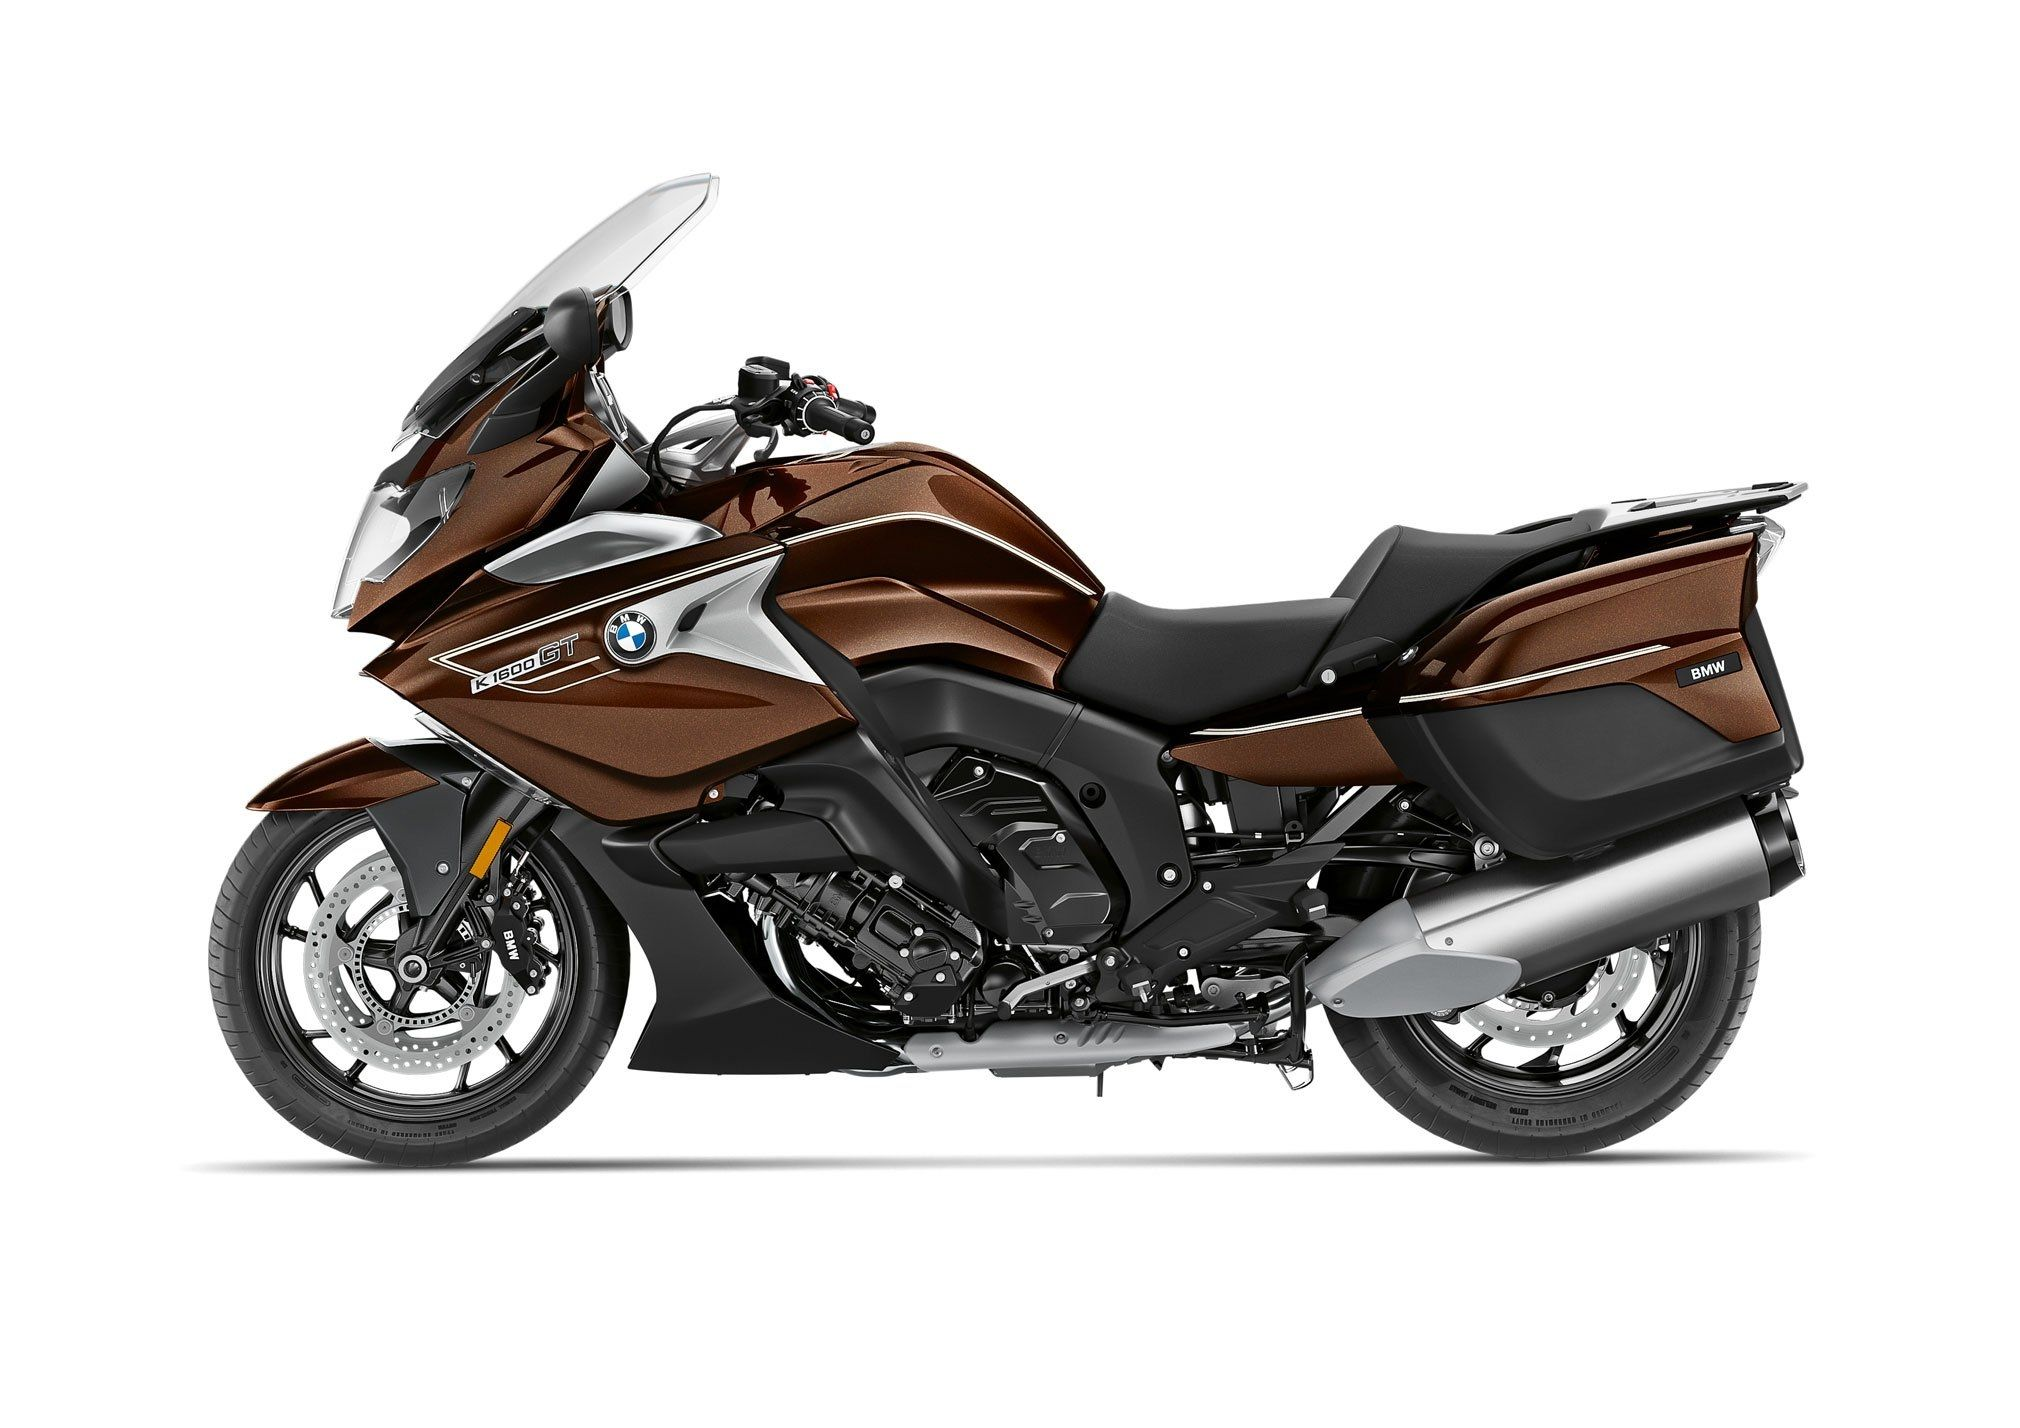 Bmw K1600Gt Sport 2020 in 2020 Bmw, Motorcycles in india